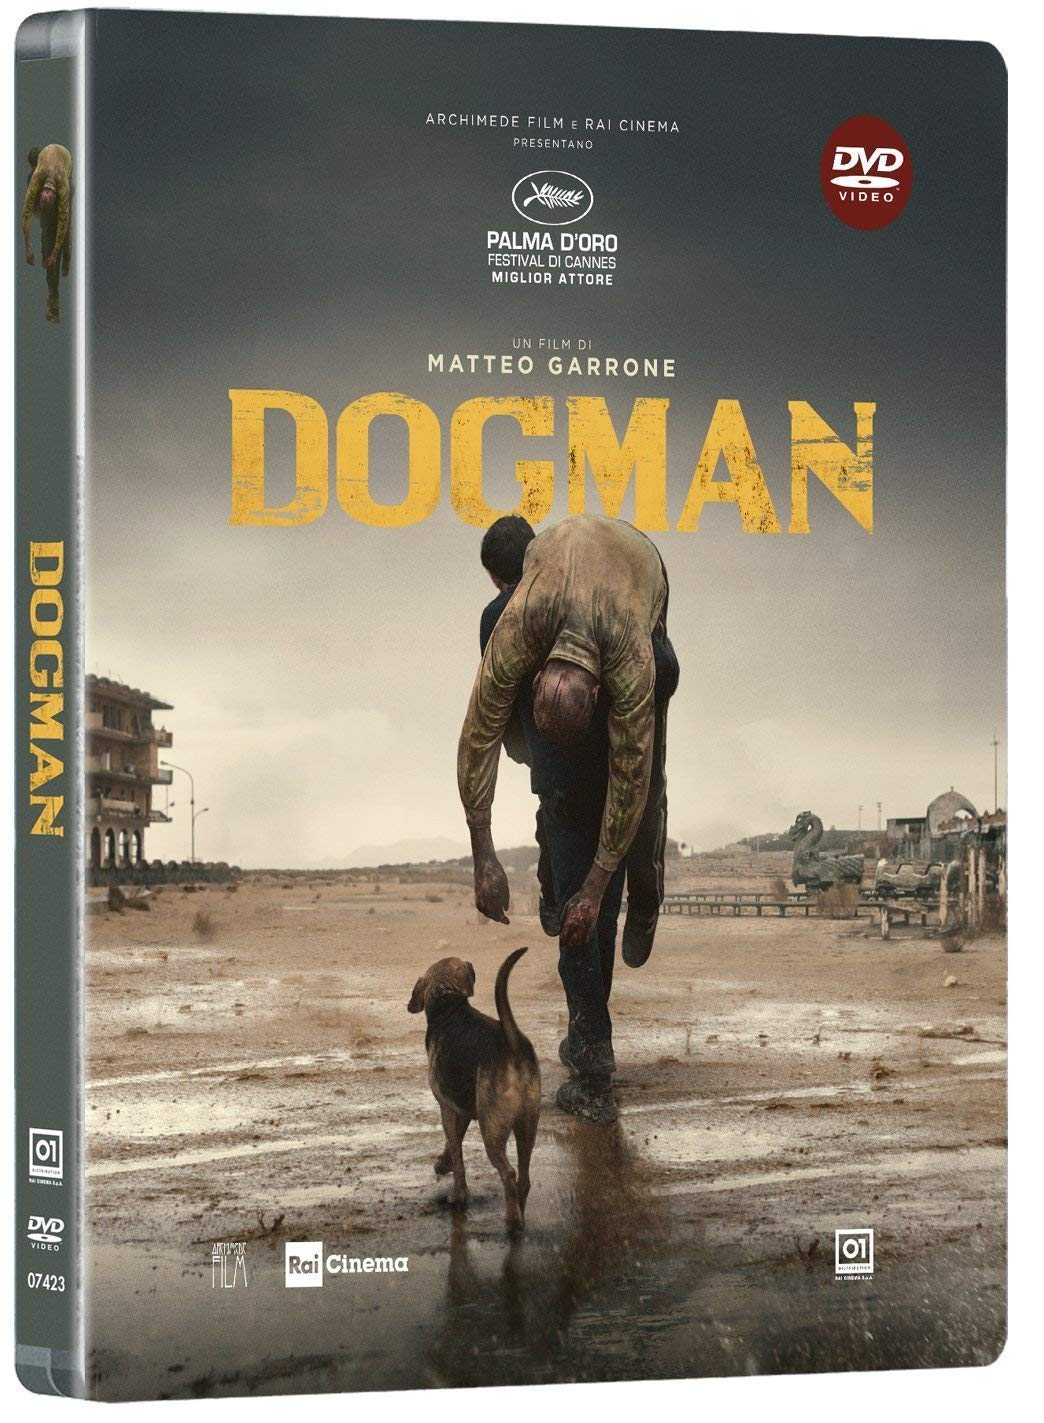 DOGMAN (LTD STEELBOOK) (DVD)